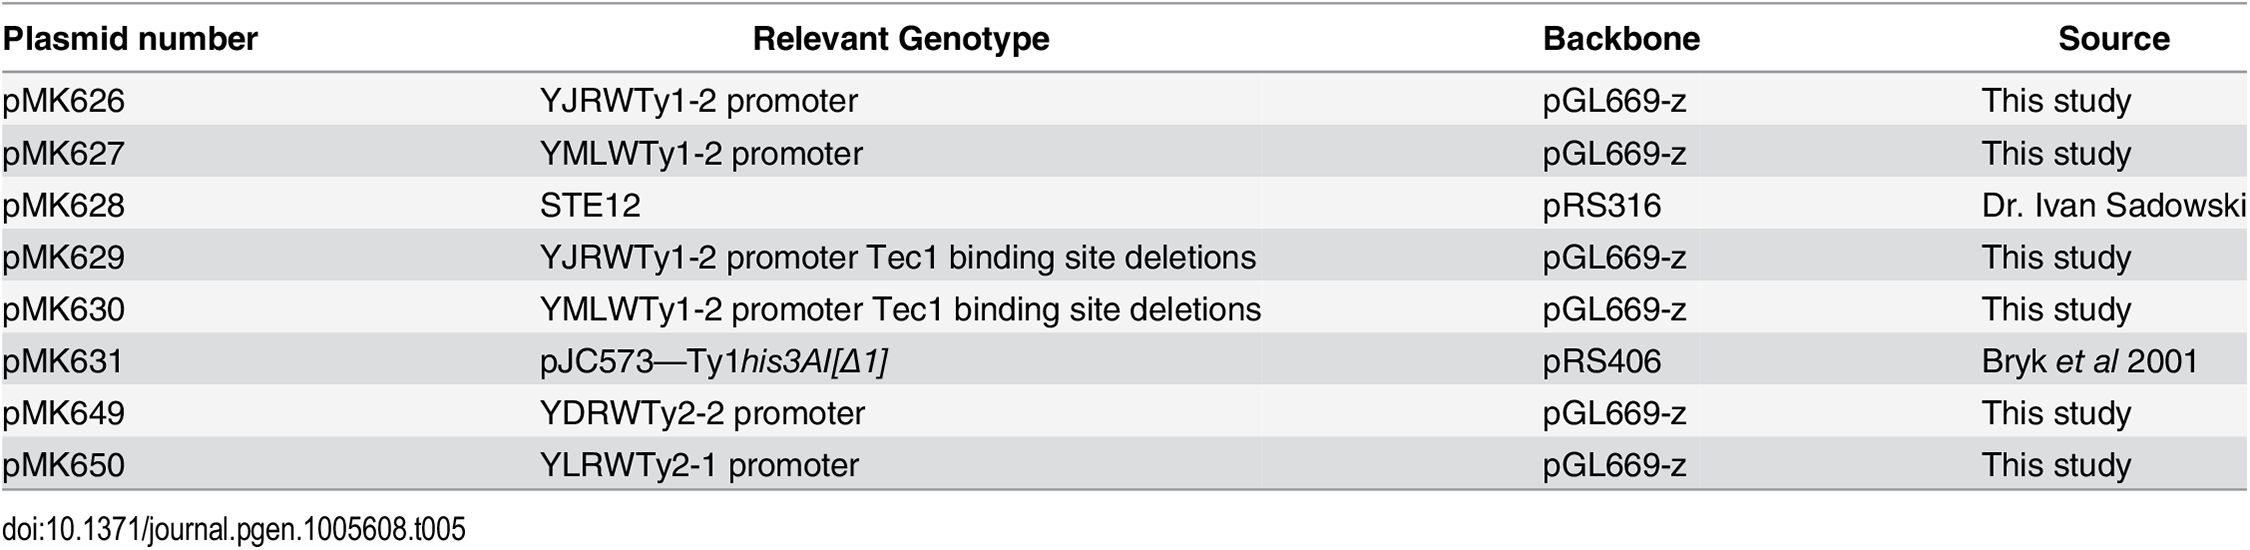 Plasmids used in this study.